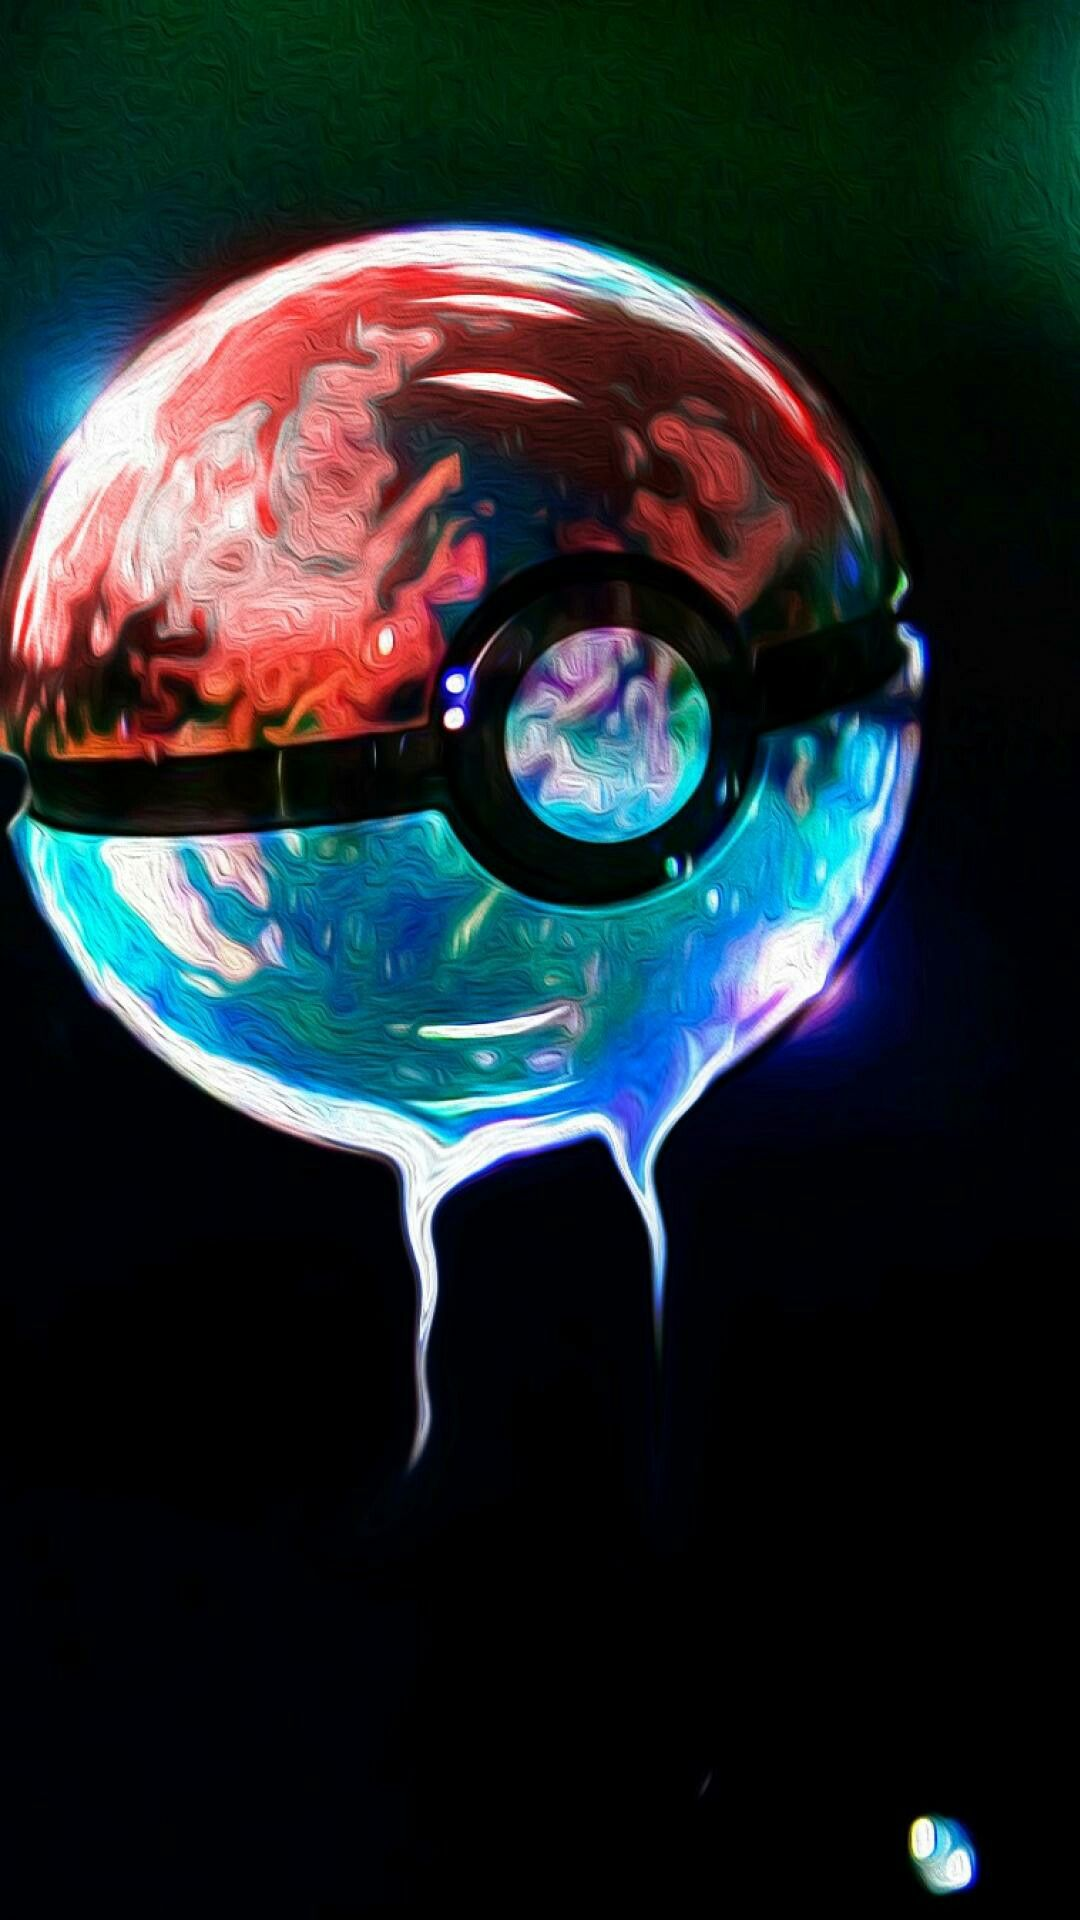 Poké Ball Coole pokemon, Alle pokemon, Cooler hintergrund